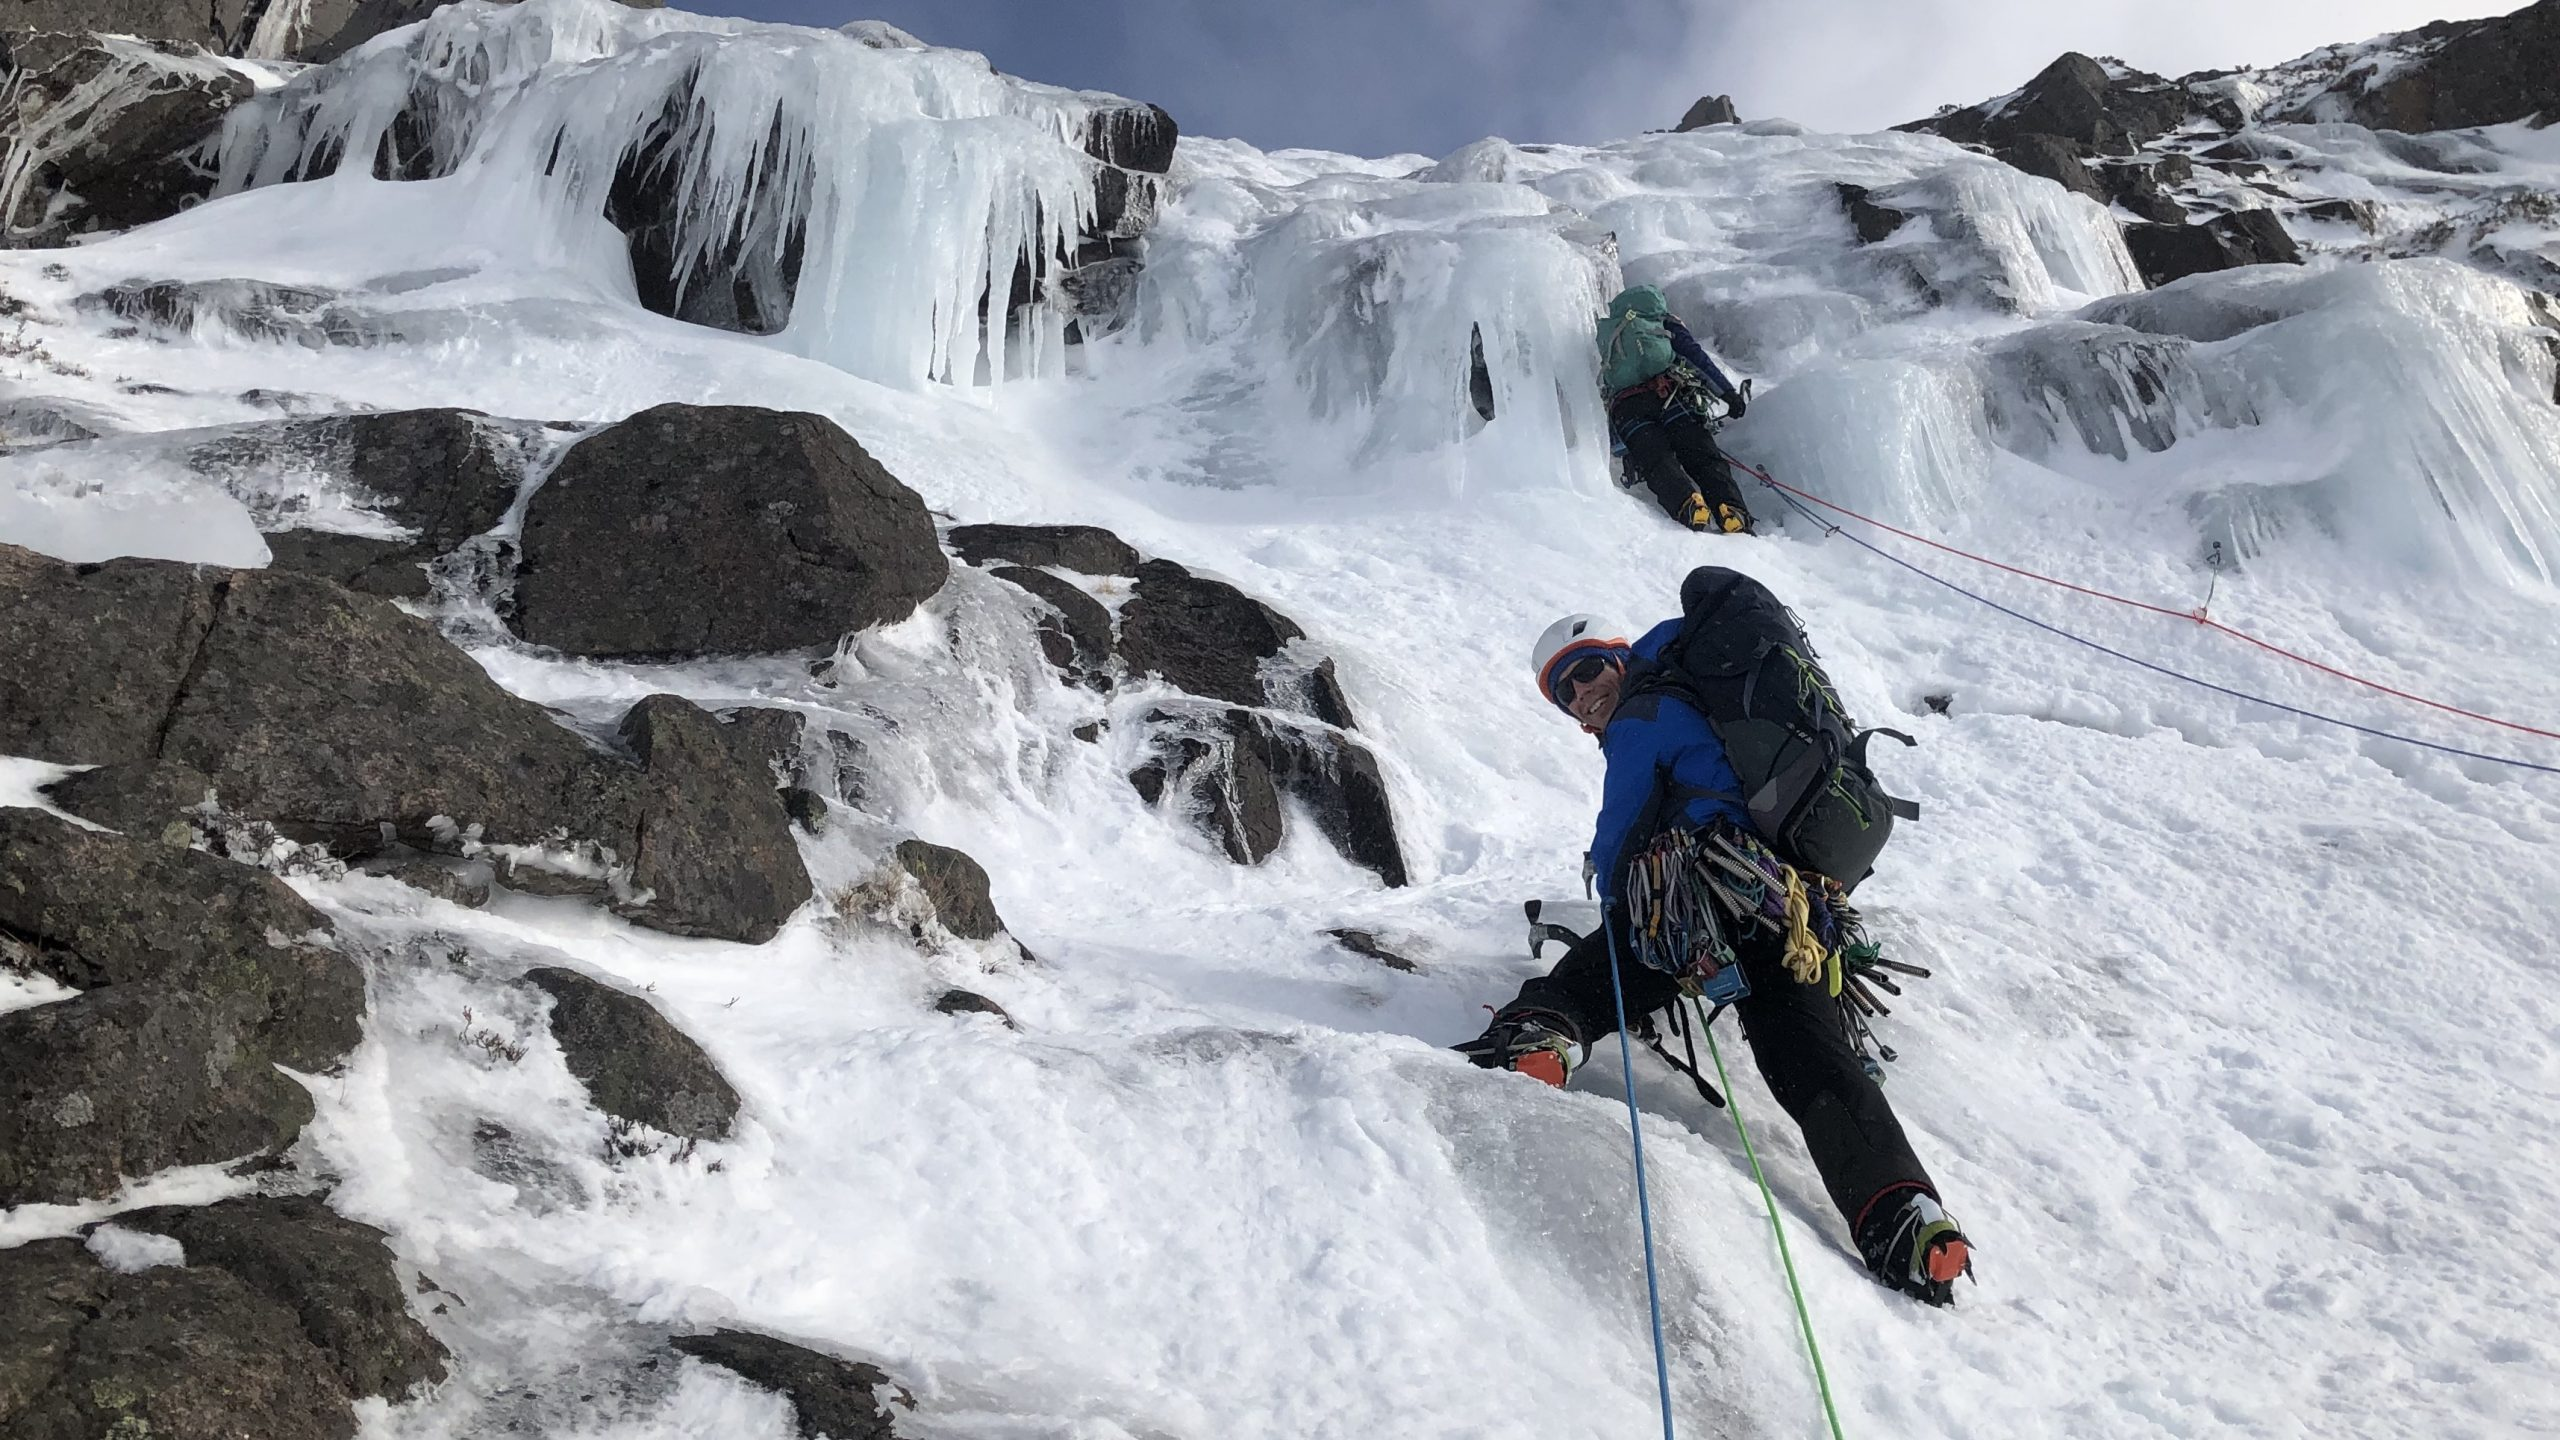 A climber leading up a steep ice climb in Lurchers Gully in the Cairngorms